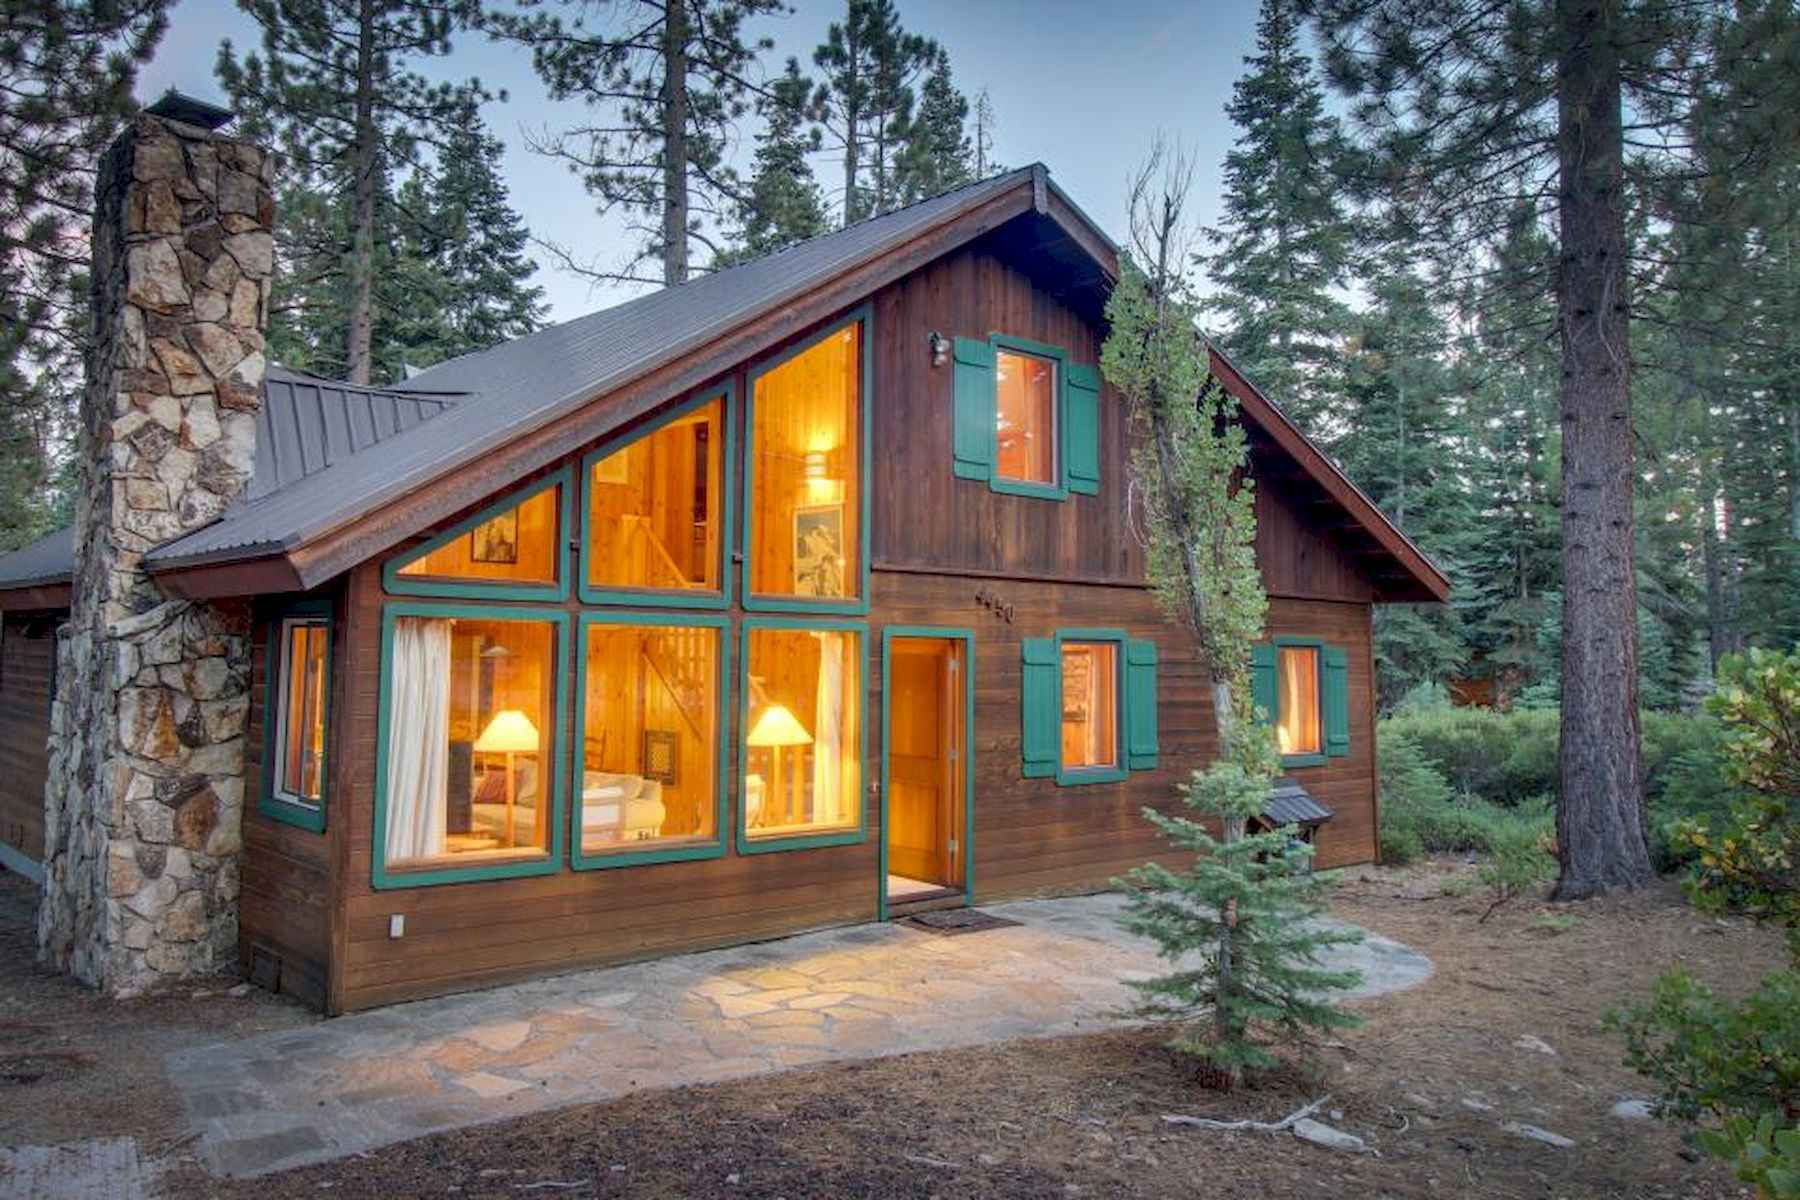 60 Rustic Log Cabin Homes Plans Design Ideas And Remodel (54)